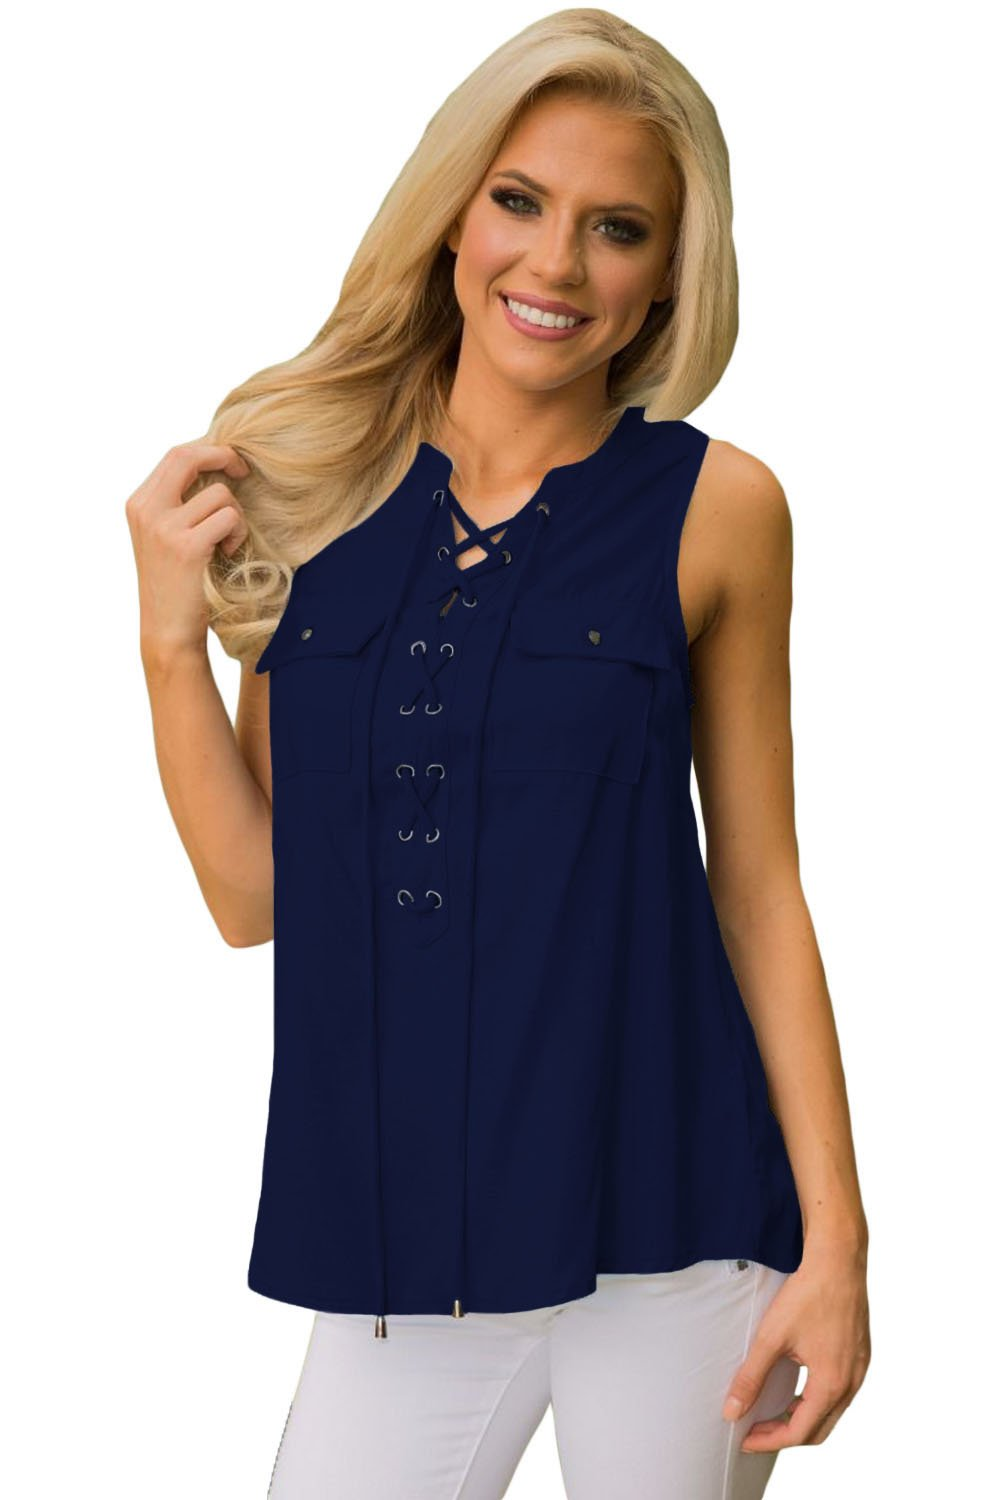 Blue Sleeveless Tank Top with Lace up